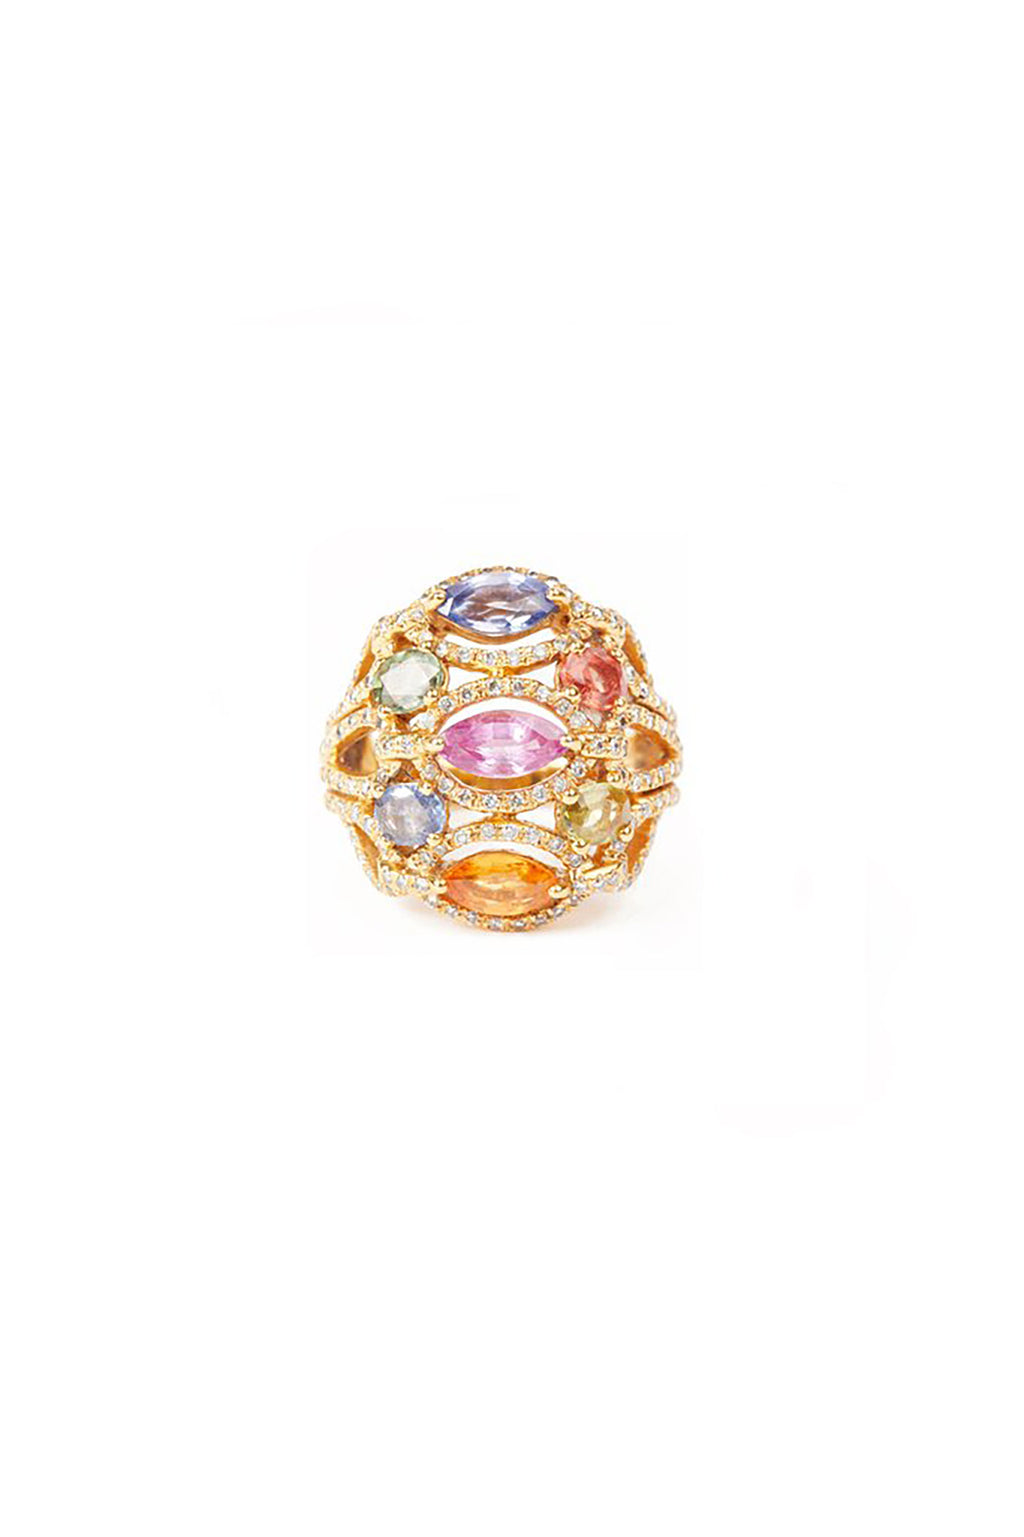 Gold Diamond and Multicoloured Stones Ring